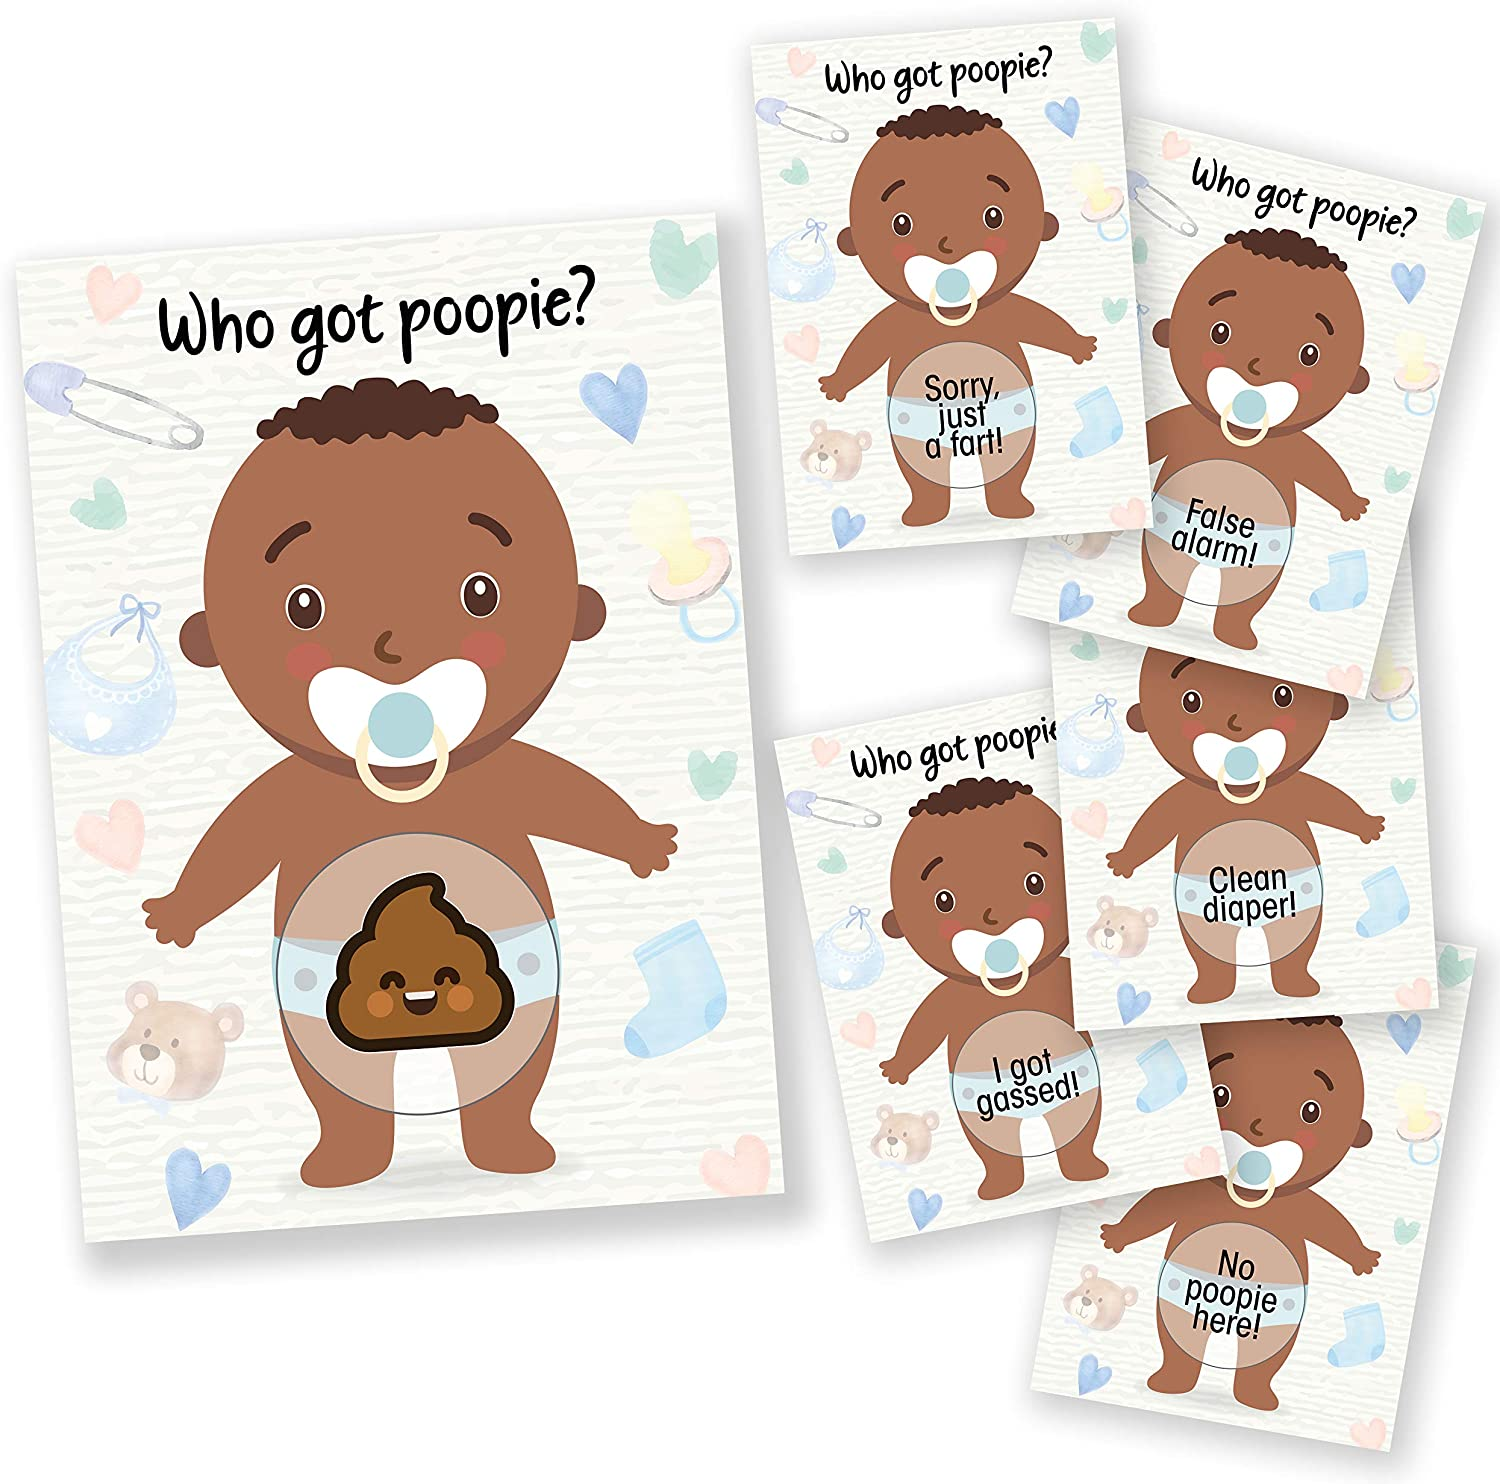 Baby Shower Games 33 Raffle Cards, Party Hearty, Poopie Emoji Scratch Off Lottery Tickets, Boy African American, 3 Winners 5 Different Loser Card Designs, Silly Activity for Ice Breakers, Door Prizes